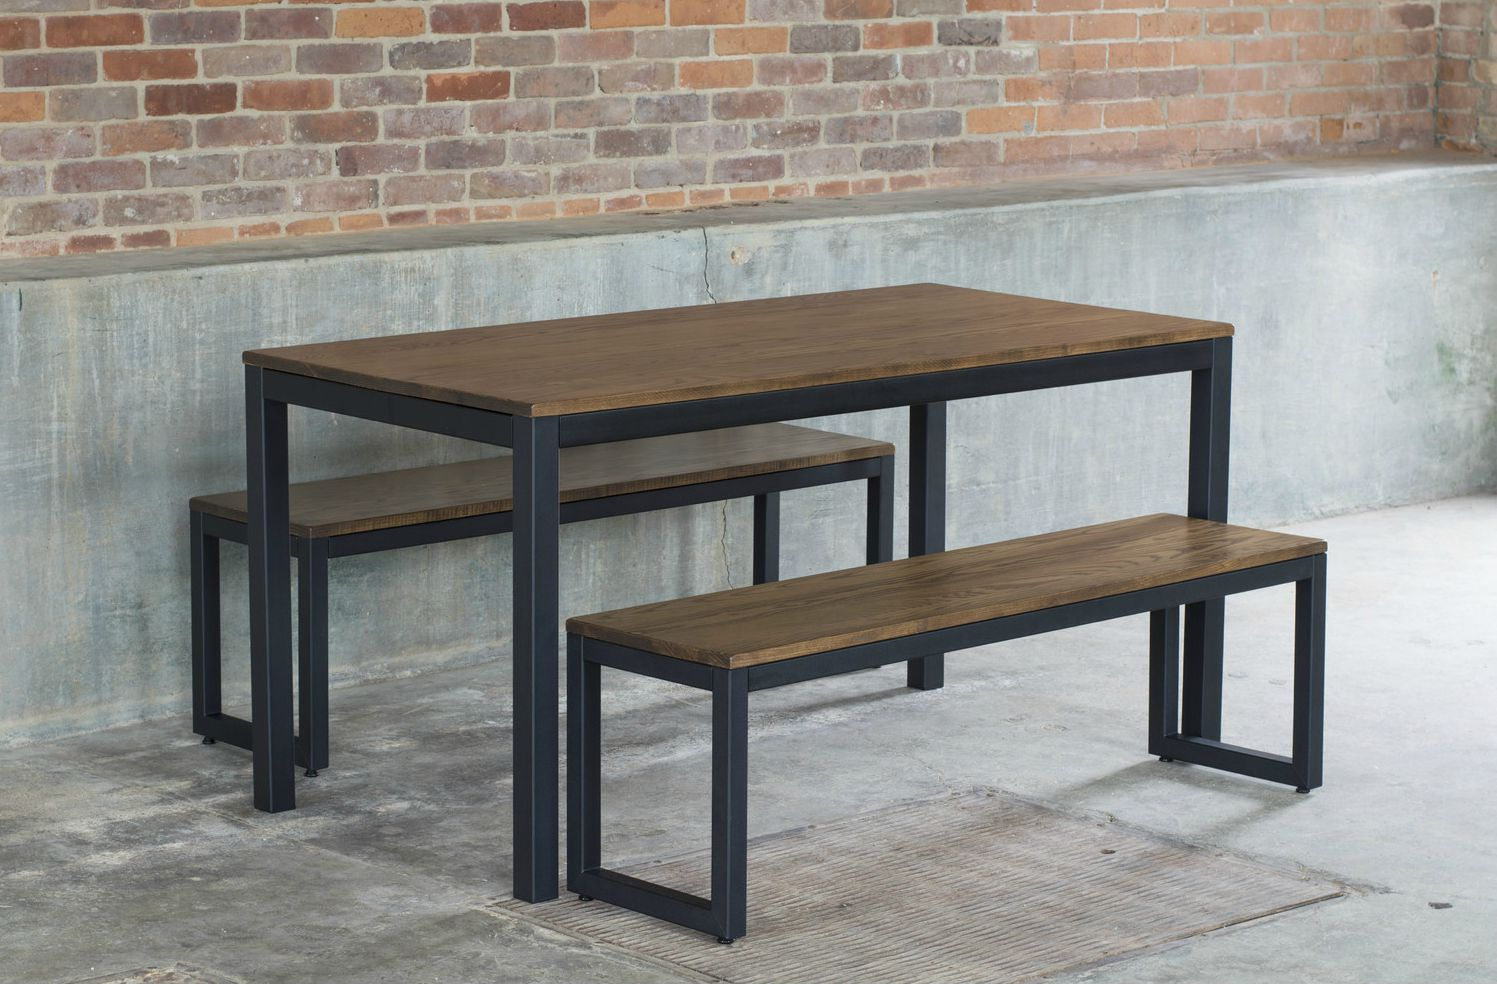 West Elm Industrial Oak & Steel Dining Table Set | Decor Look Alikes